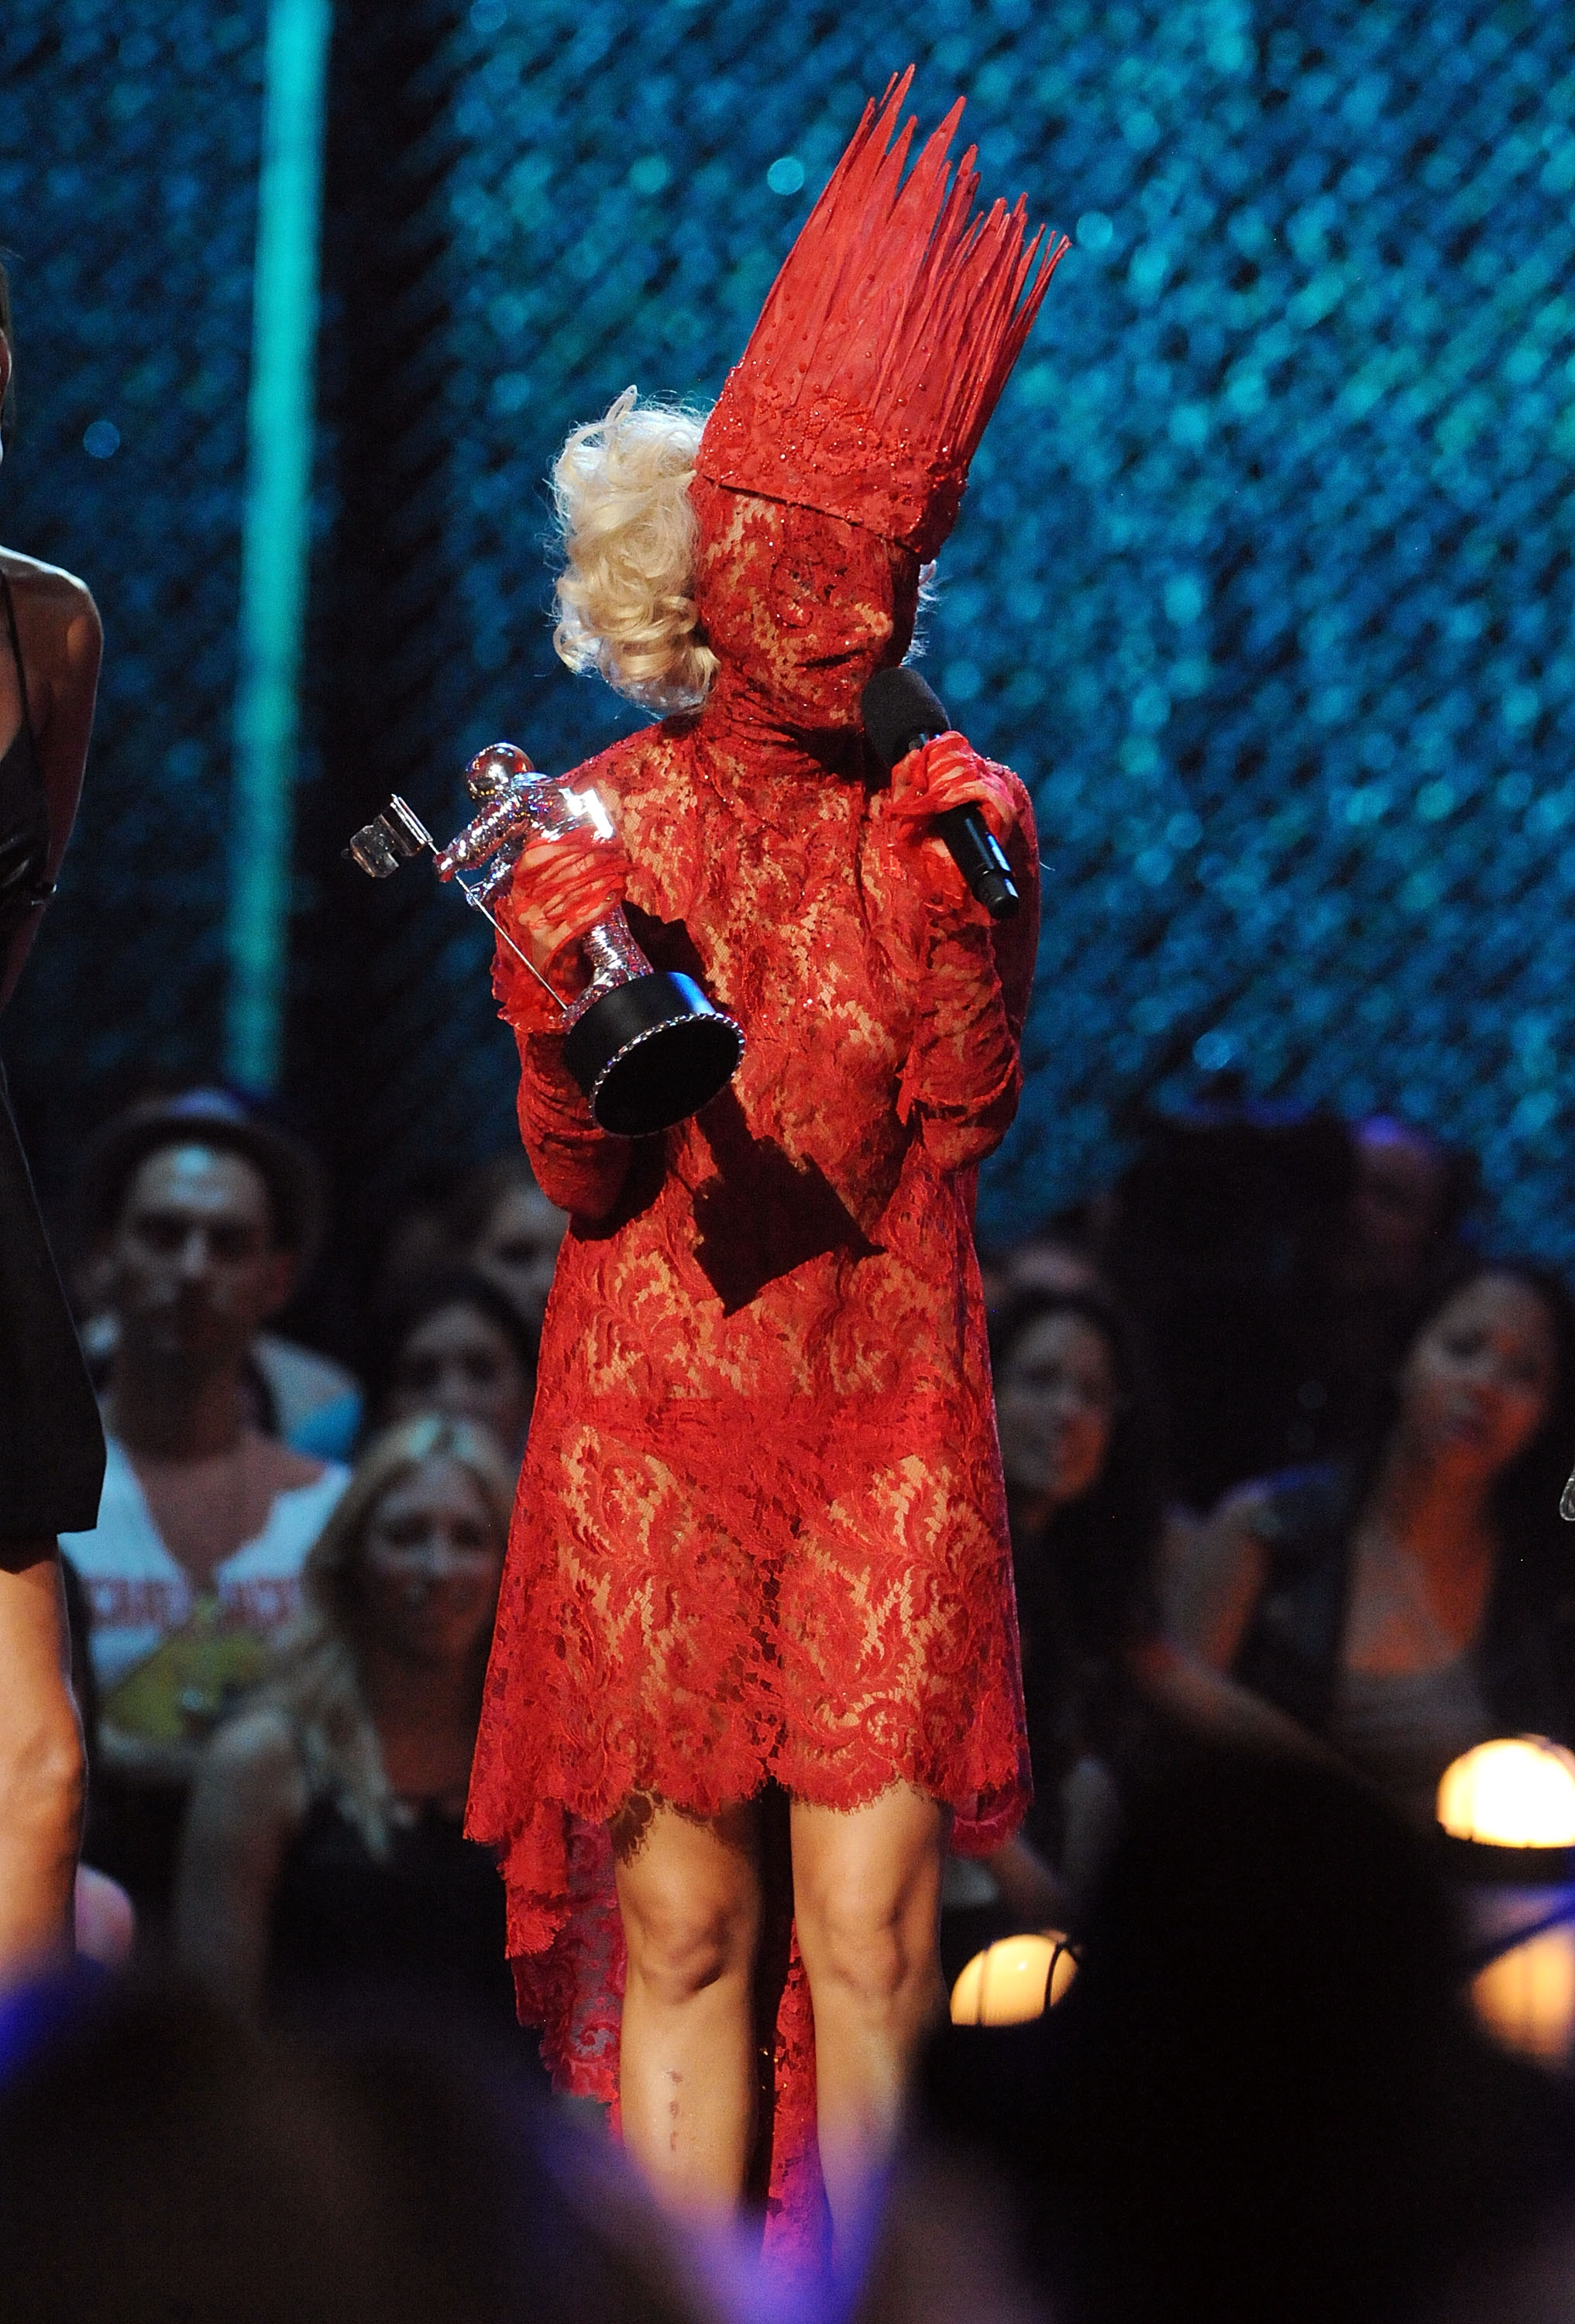 NEW YORK - SEPTEMBER 13:  Lady Gaga accepts her award onstage during the 2009 MTV Video Music Awards at Radio City Music Hall on September 13, 2009 in New York City.  (Photo by Jeff Kravitz/FilmMagic)